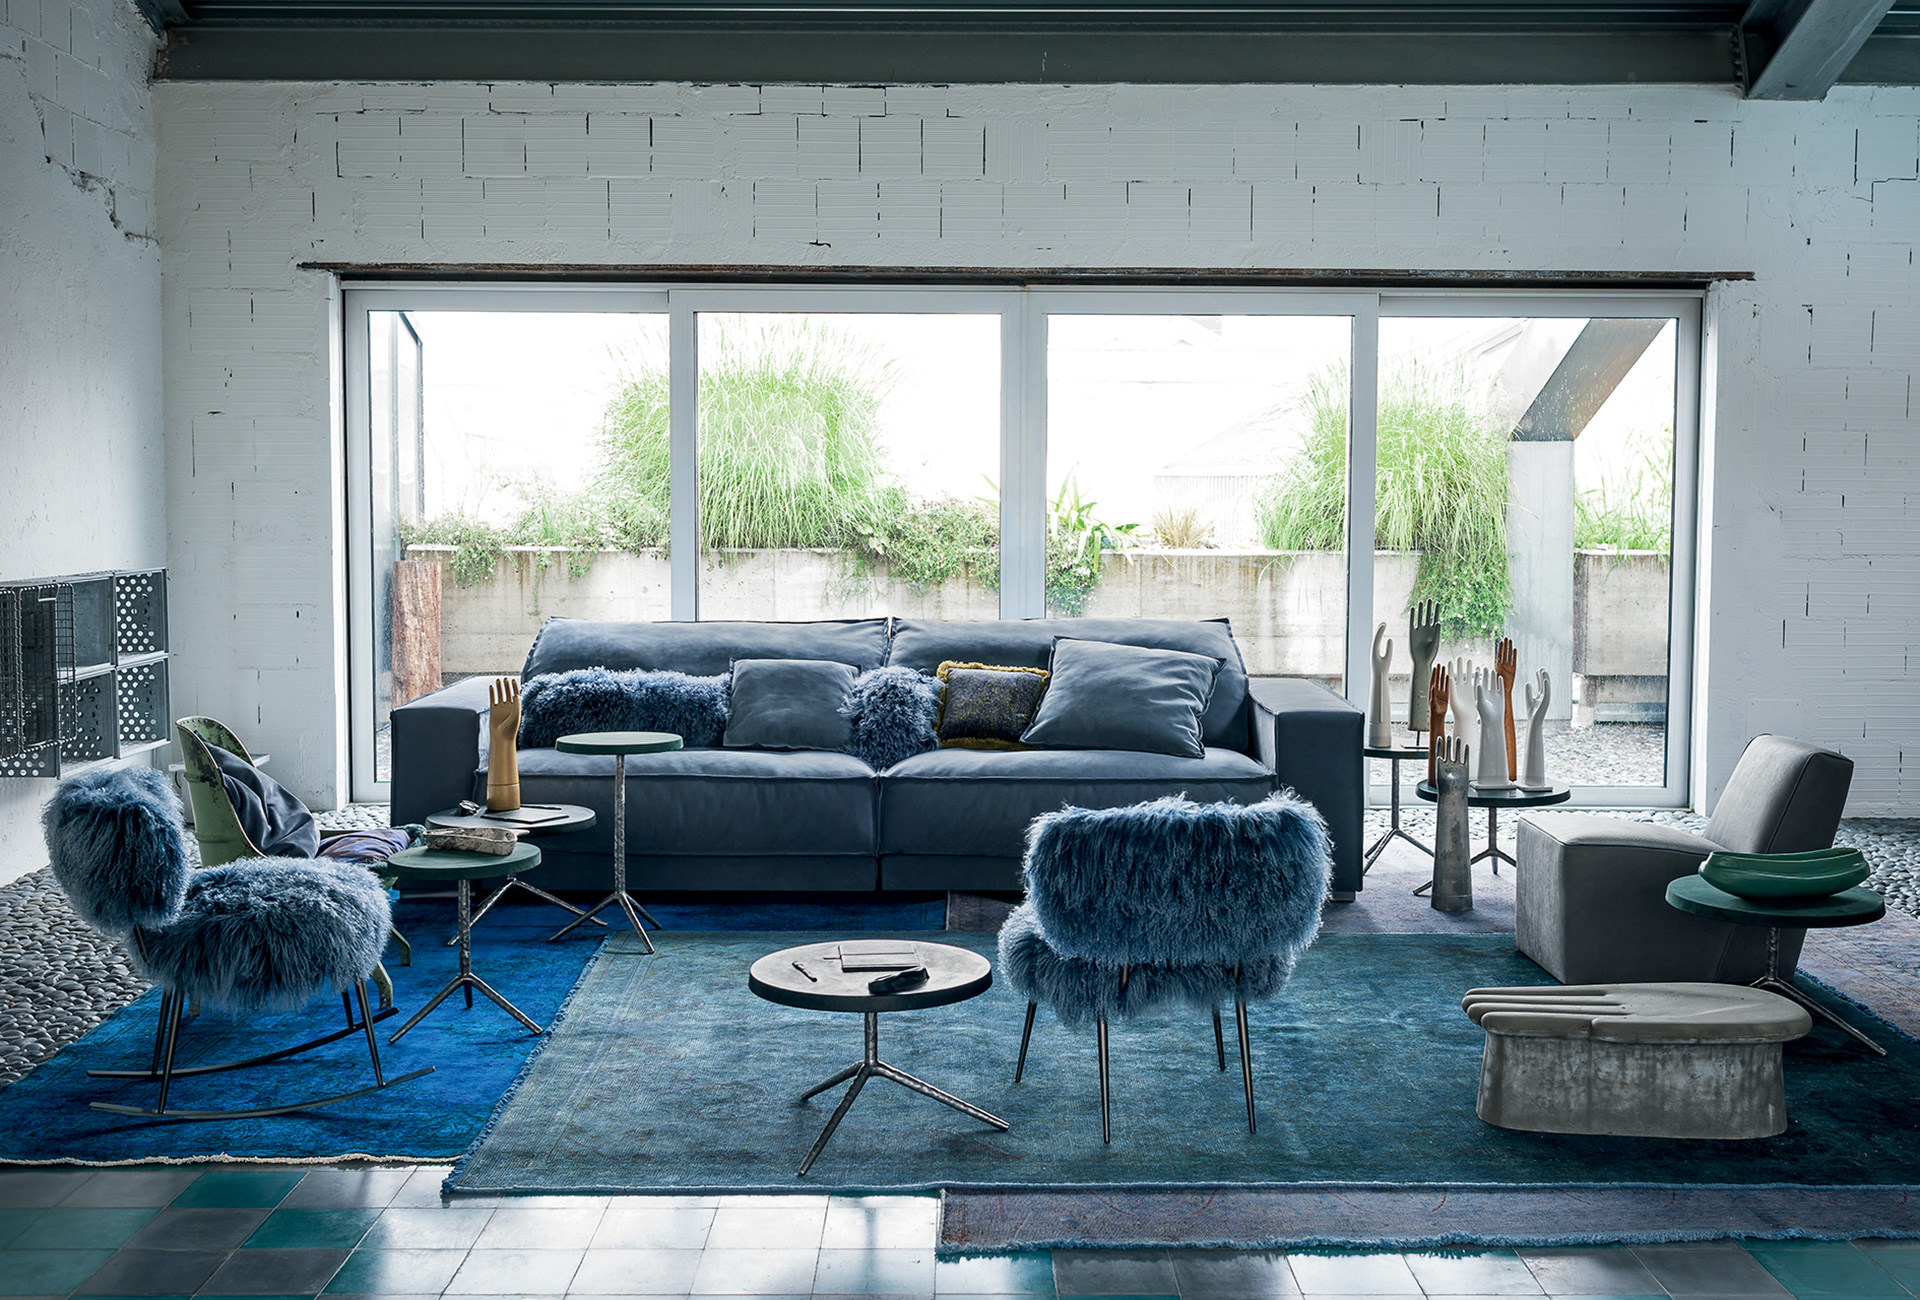 Paola navone 8 casa baxter for Baxter paola navone